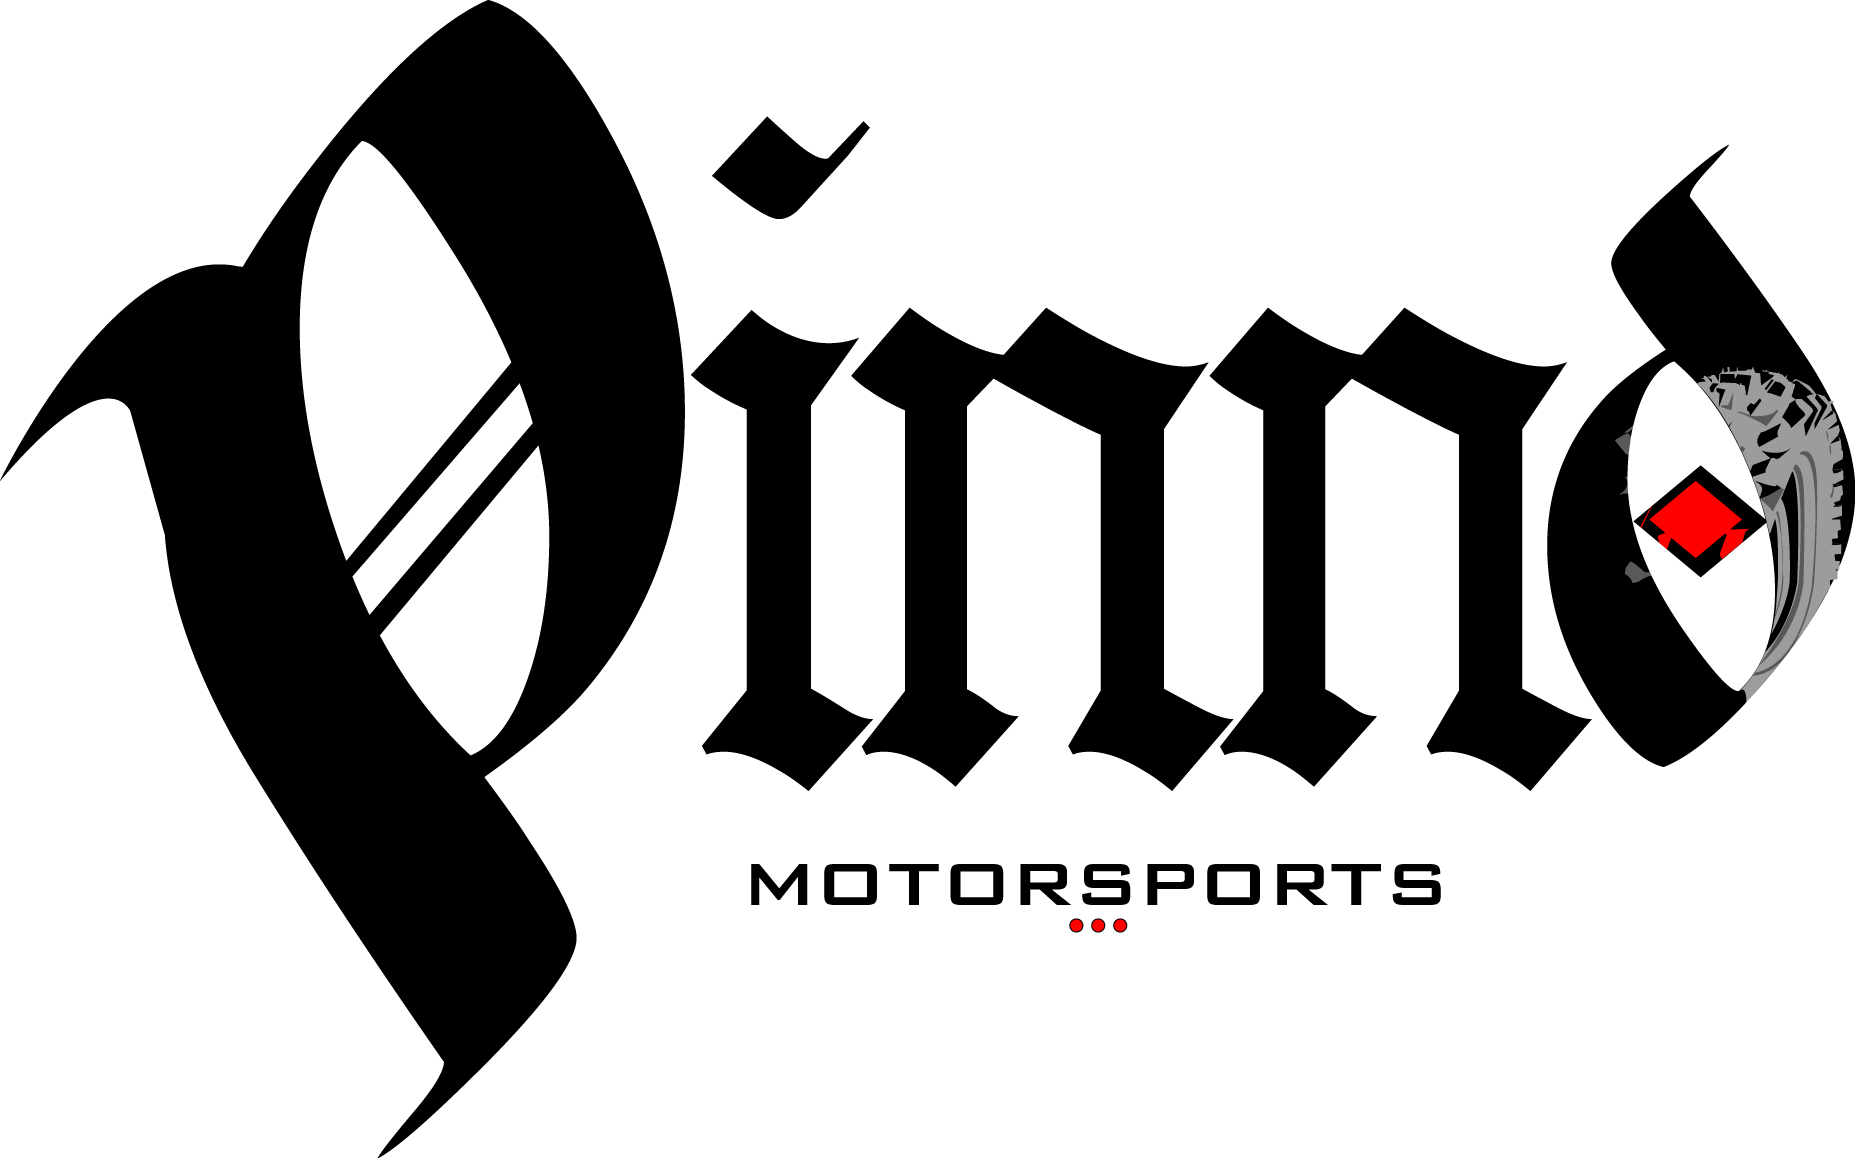 Logo for Pinnd motorsports. Created in Adobe Illustrator